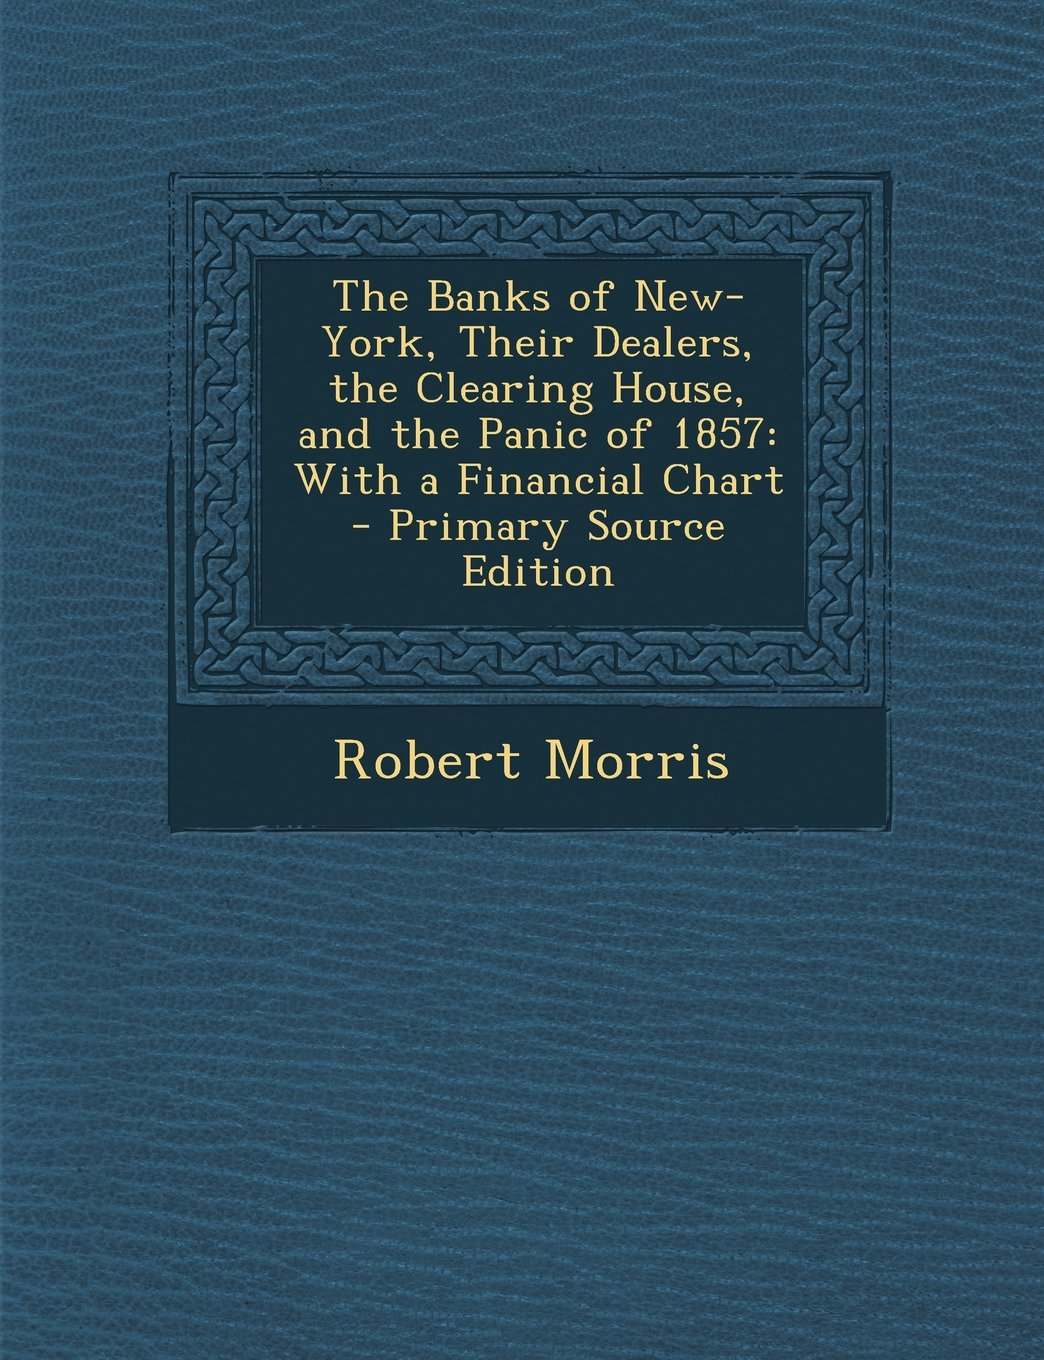 The Banks of New-York, Their Dealers, the Clearing House, and the Panic of 1857: With a Financial Chart - Primary Source Edition pdf epub